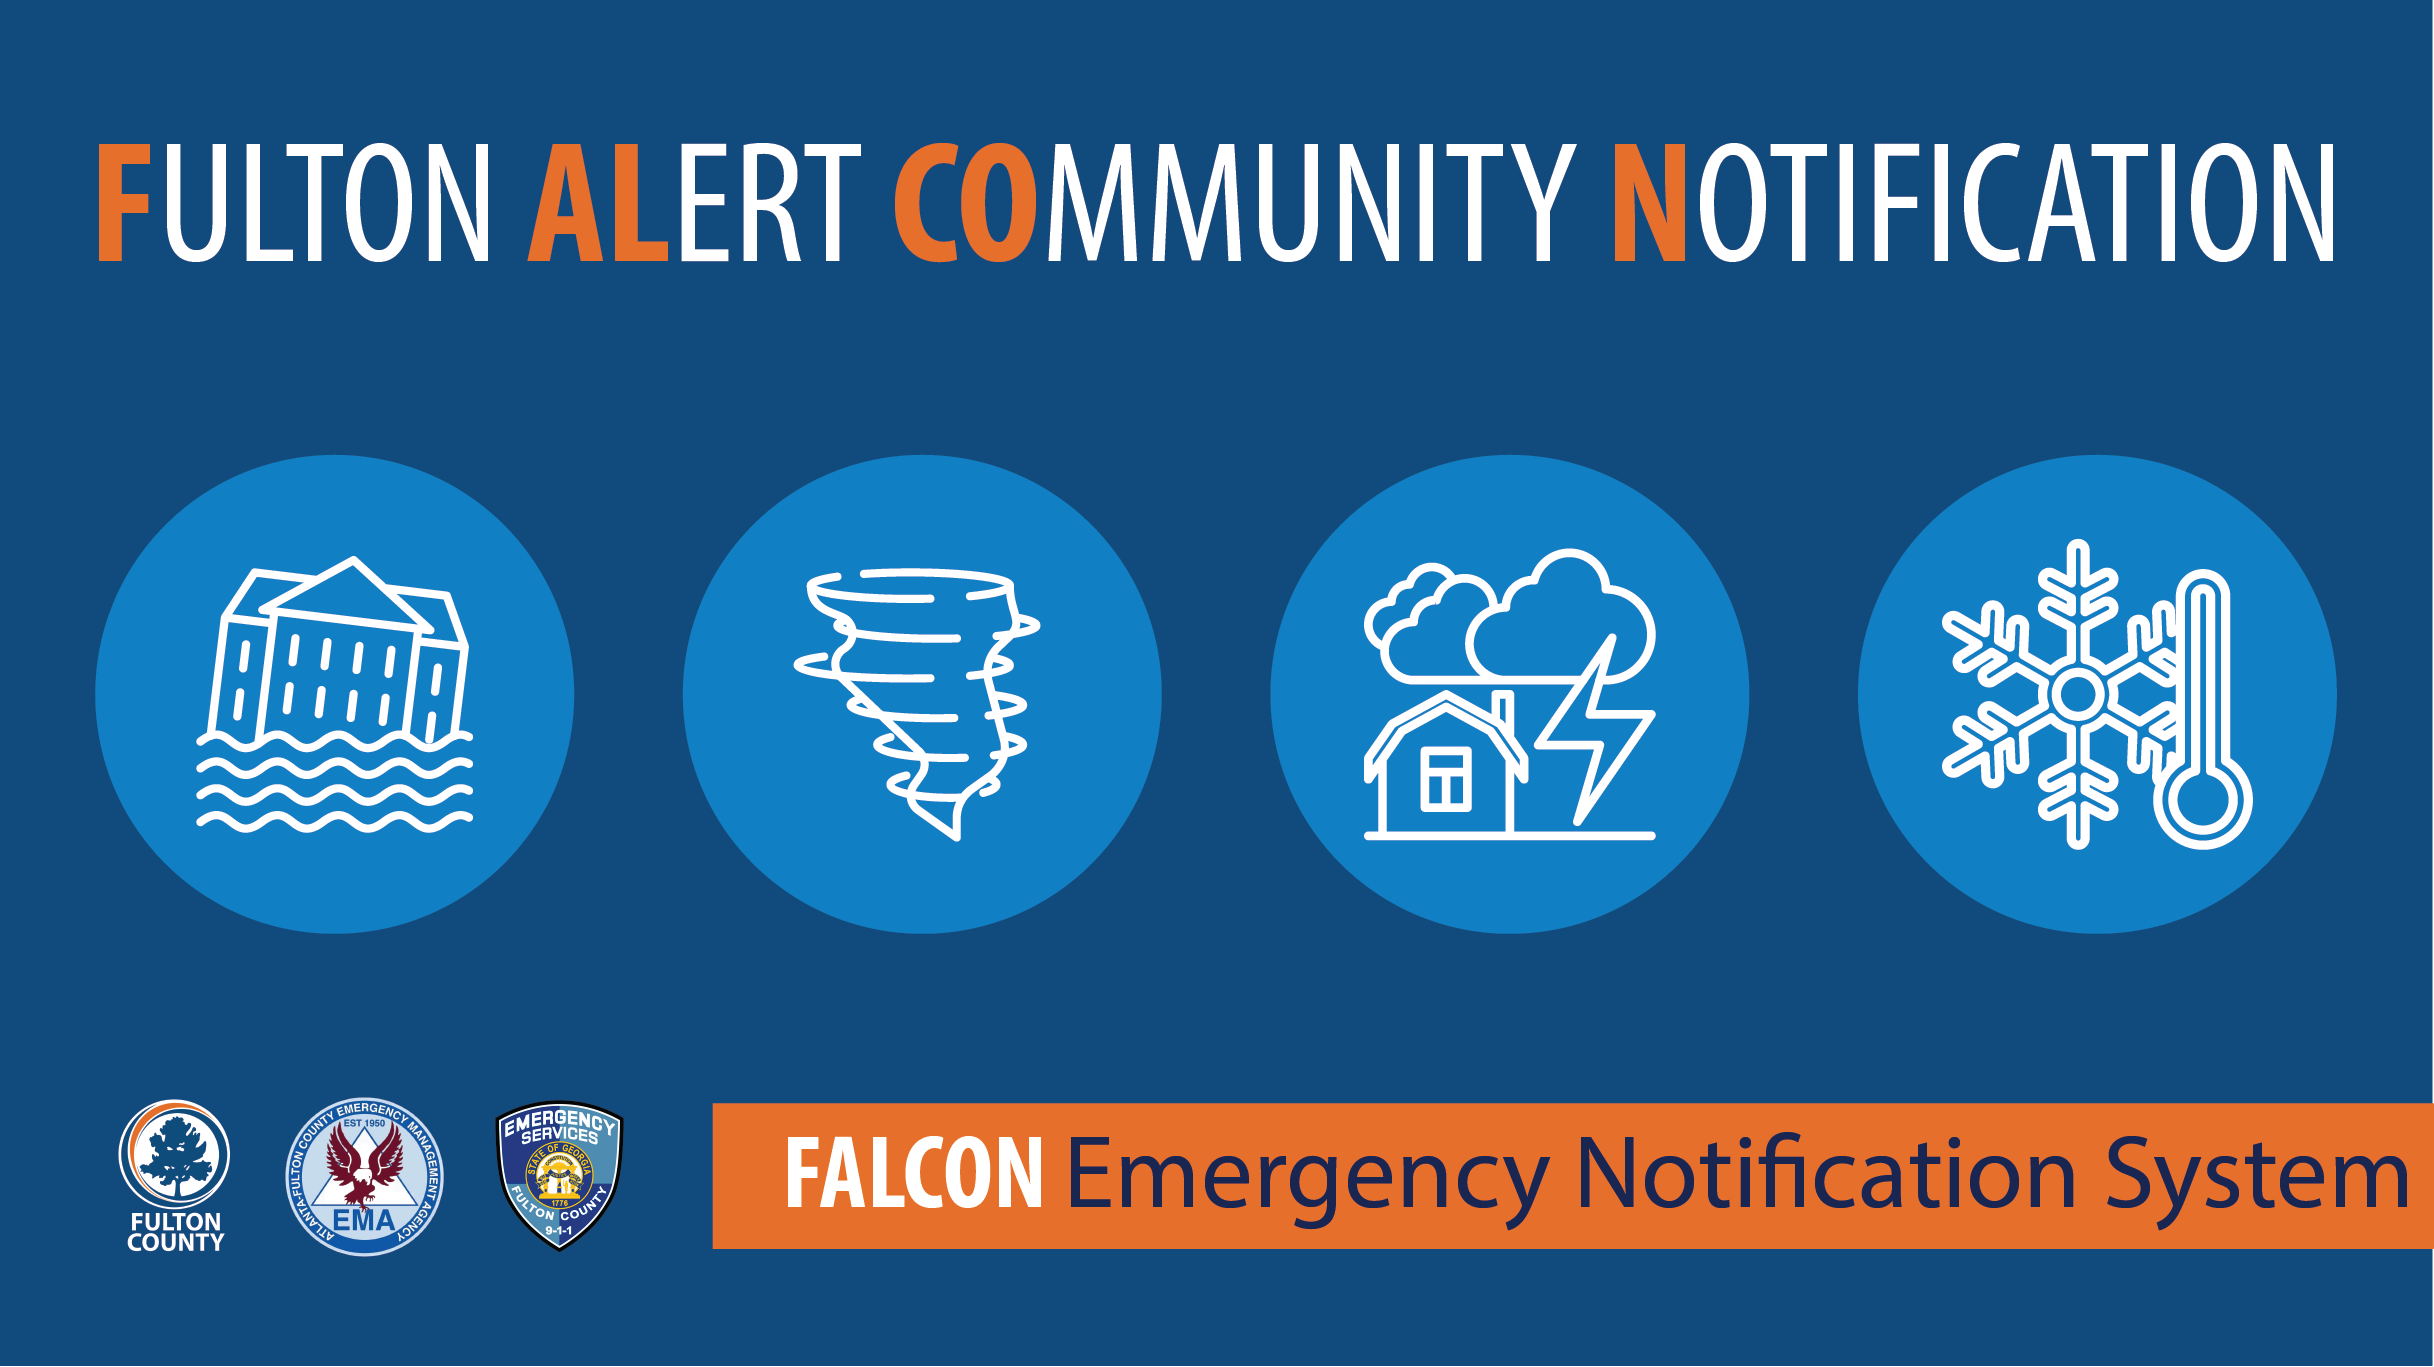 FALCON Fulton Alert Community Notification